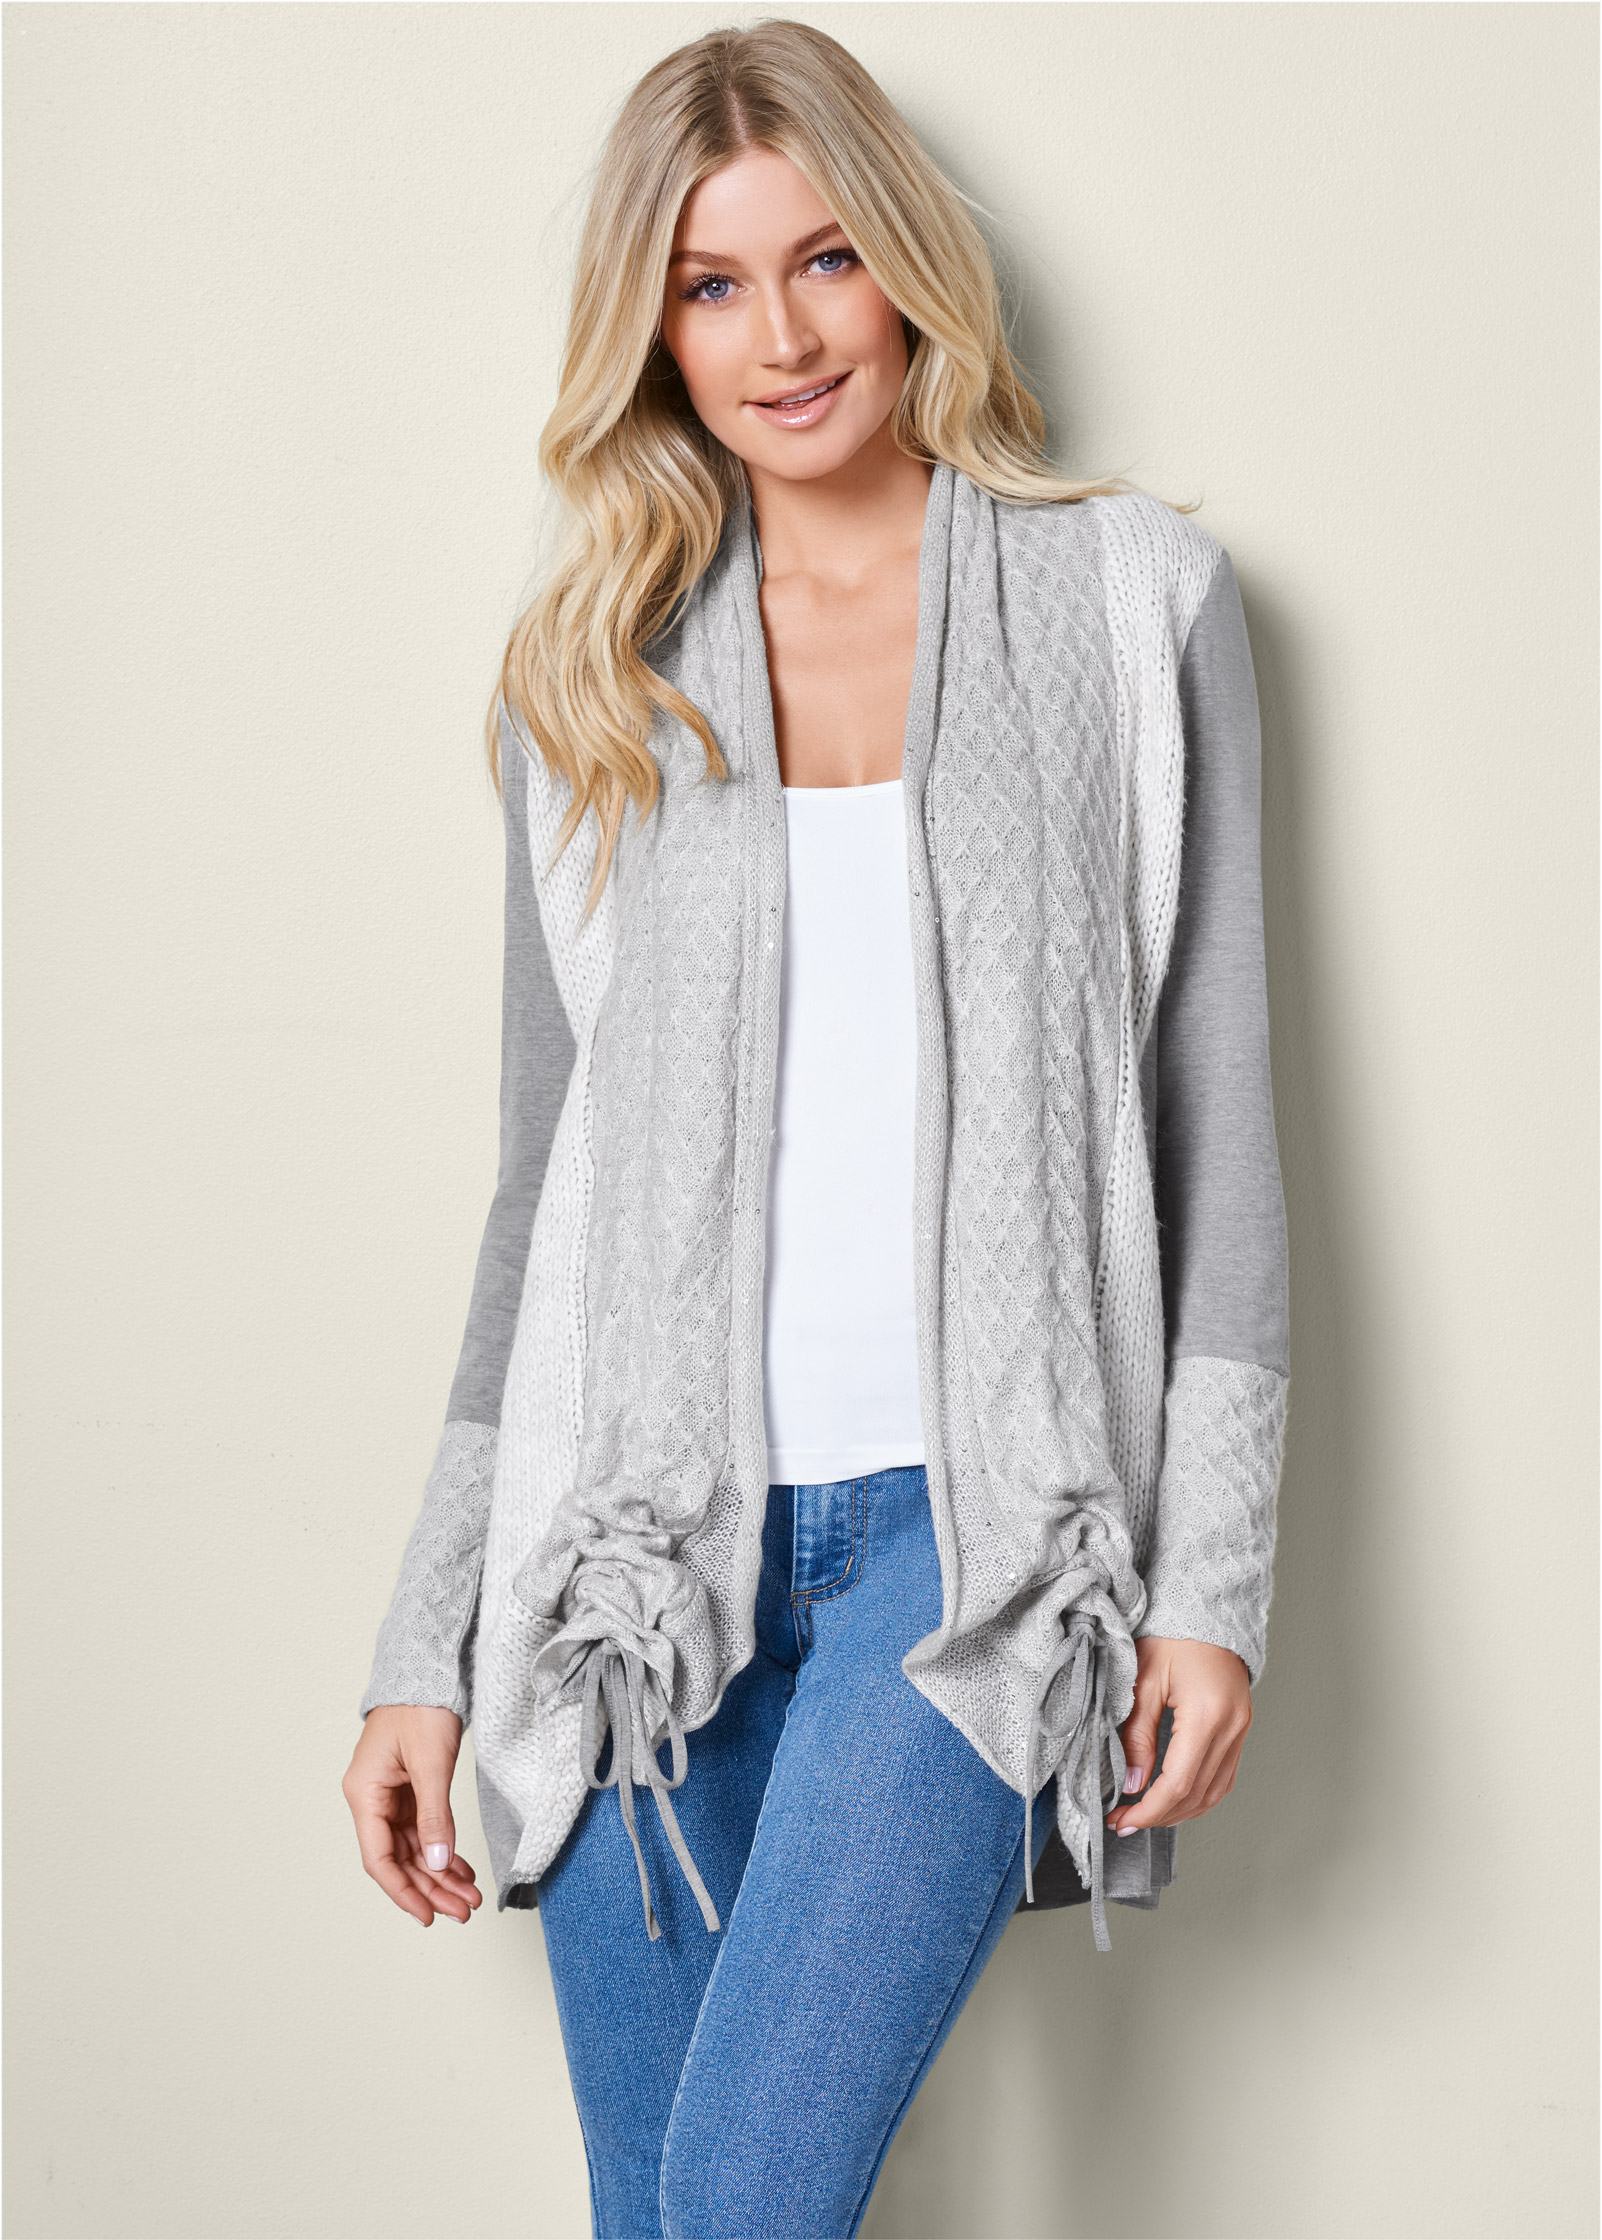 Long Cardigan cozy long cardigan,seamless cami,color skinny jeans,wrap stitch detail  bootie ERNLDJI